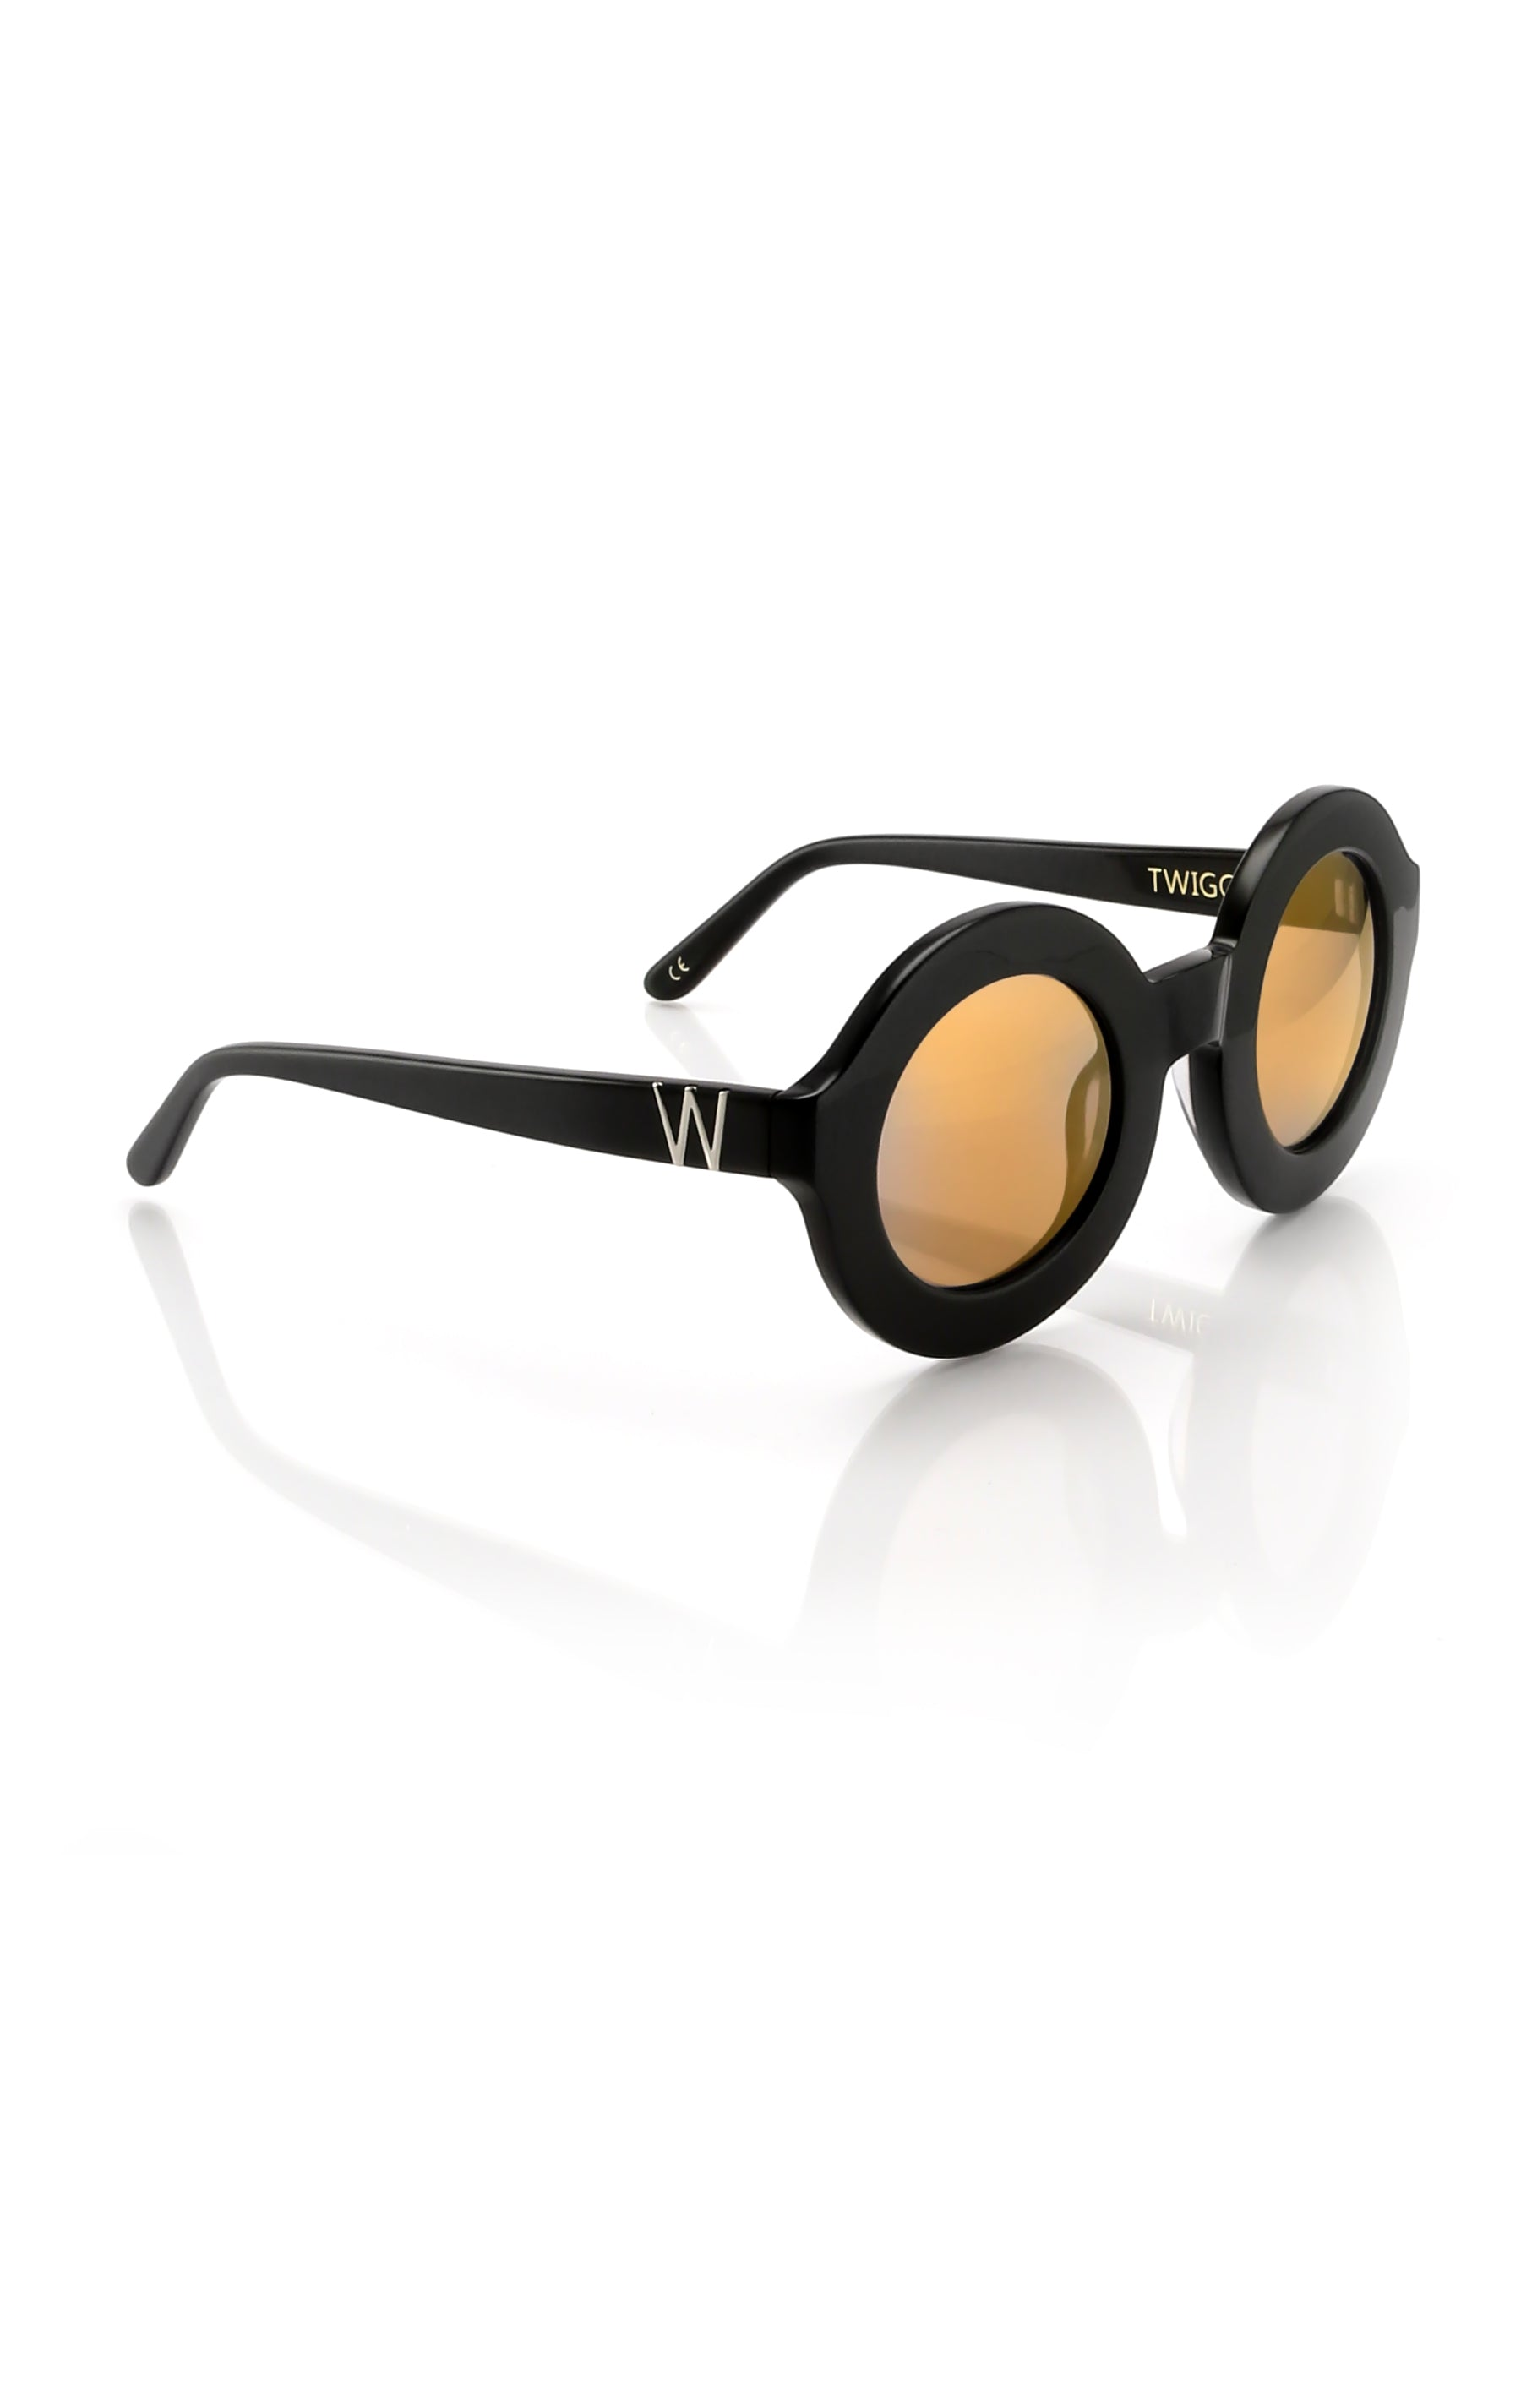 27ab42d7a81 Twiggy Deluxe Sunglasses